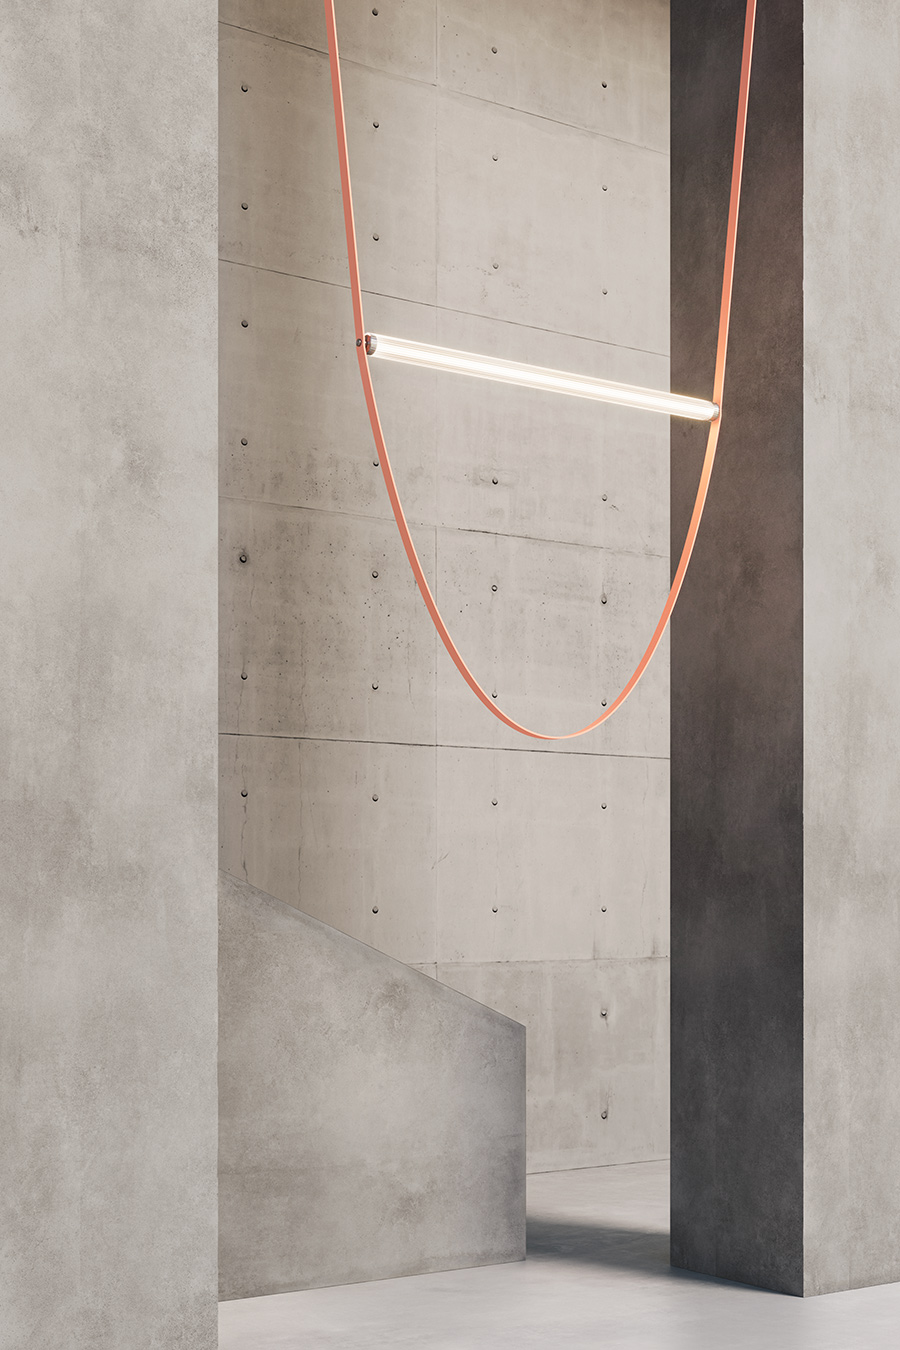 Formafantasma's new WireLine for Flos